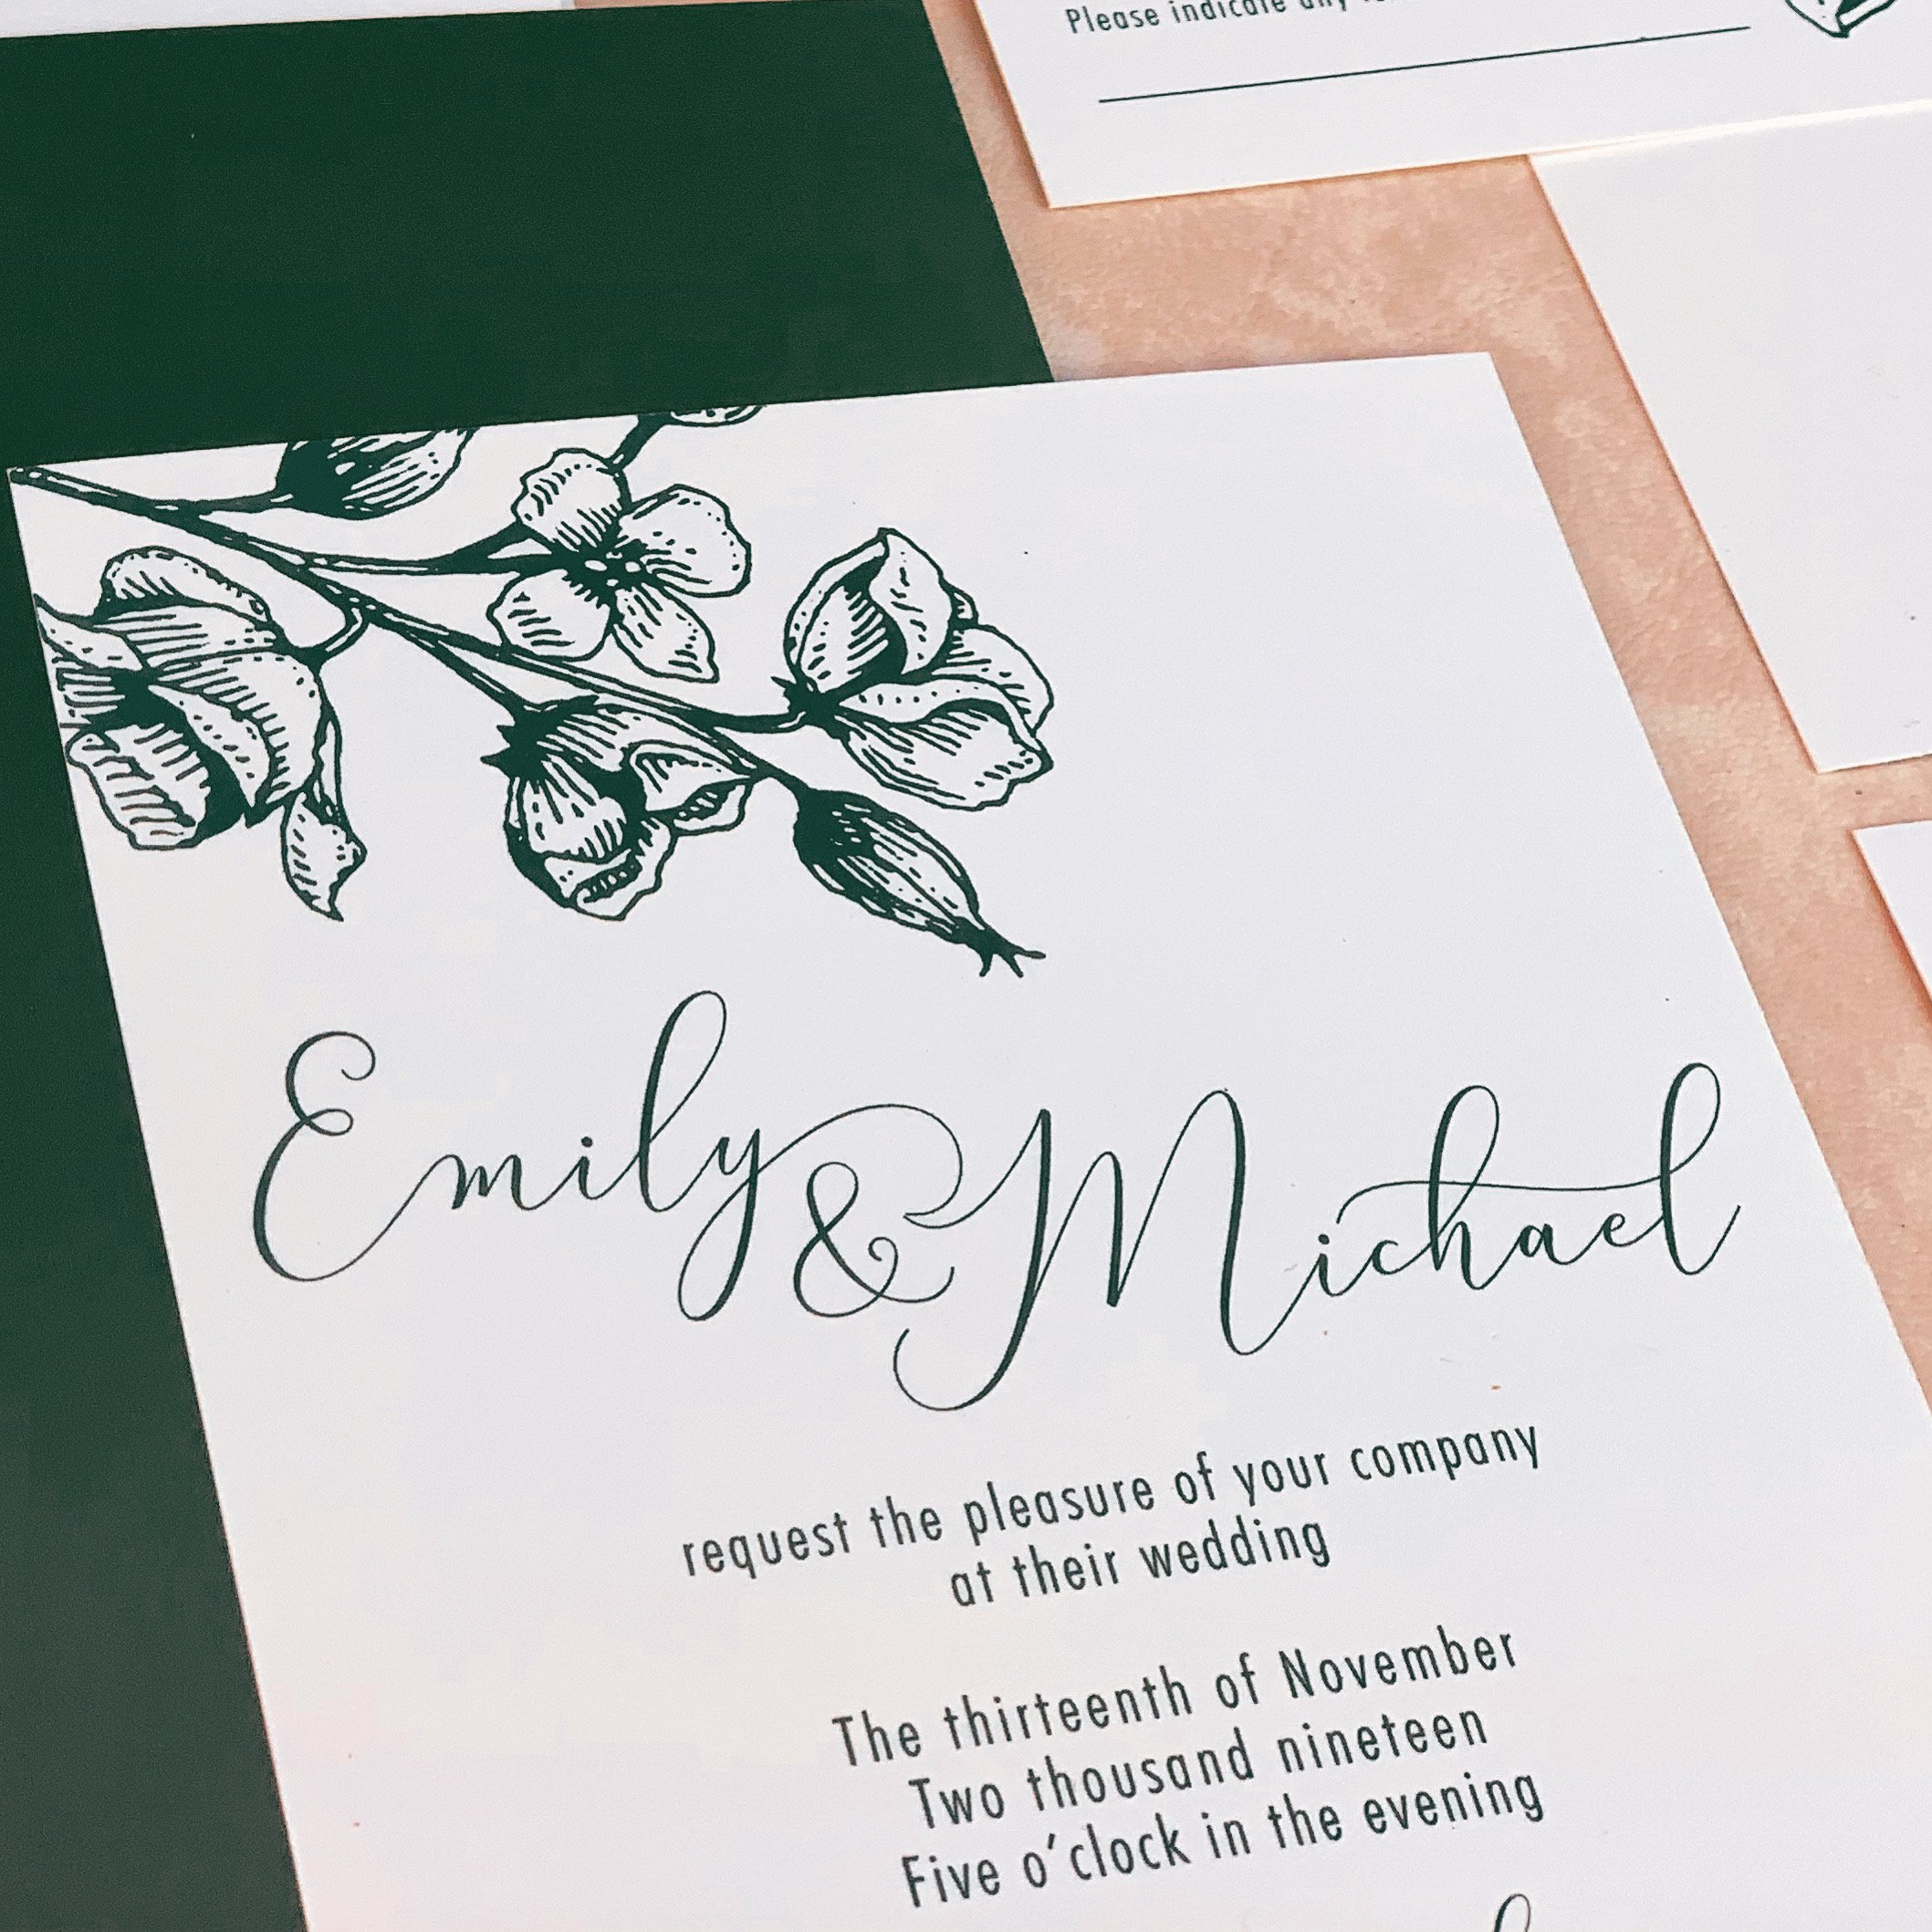 Invitation with floral design and sample bride and groom named Emily and Michael